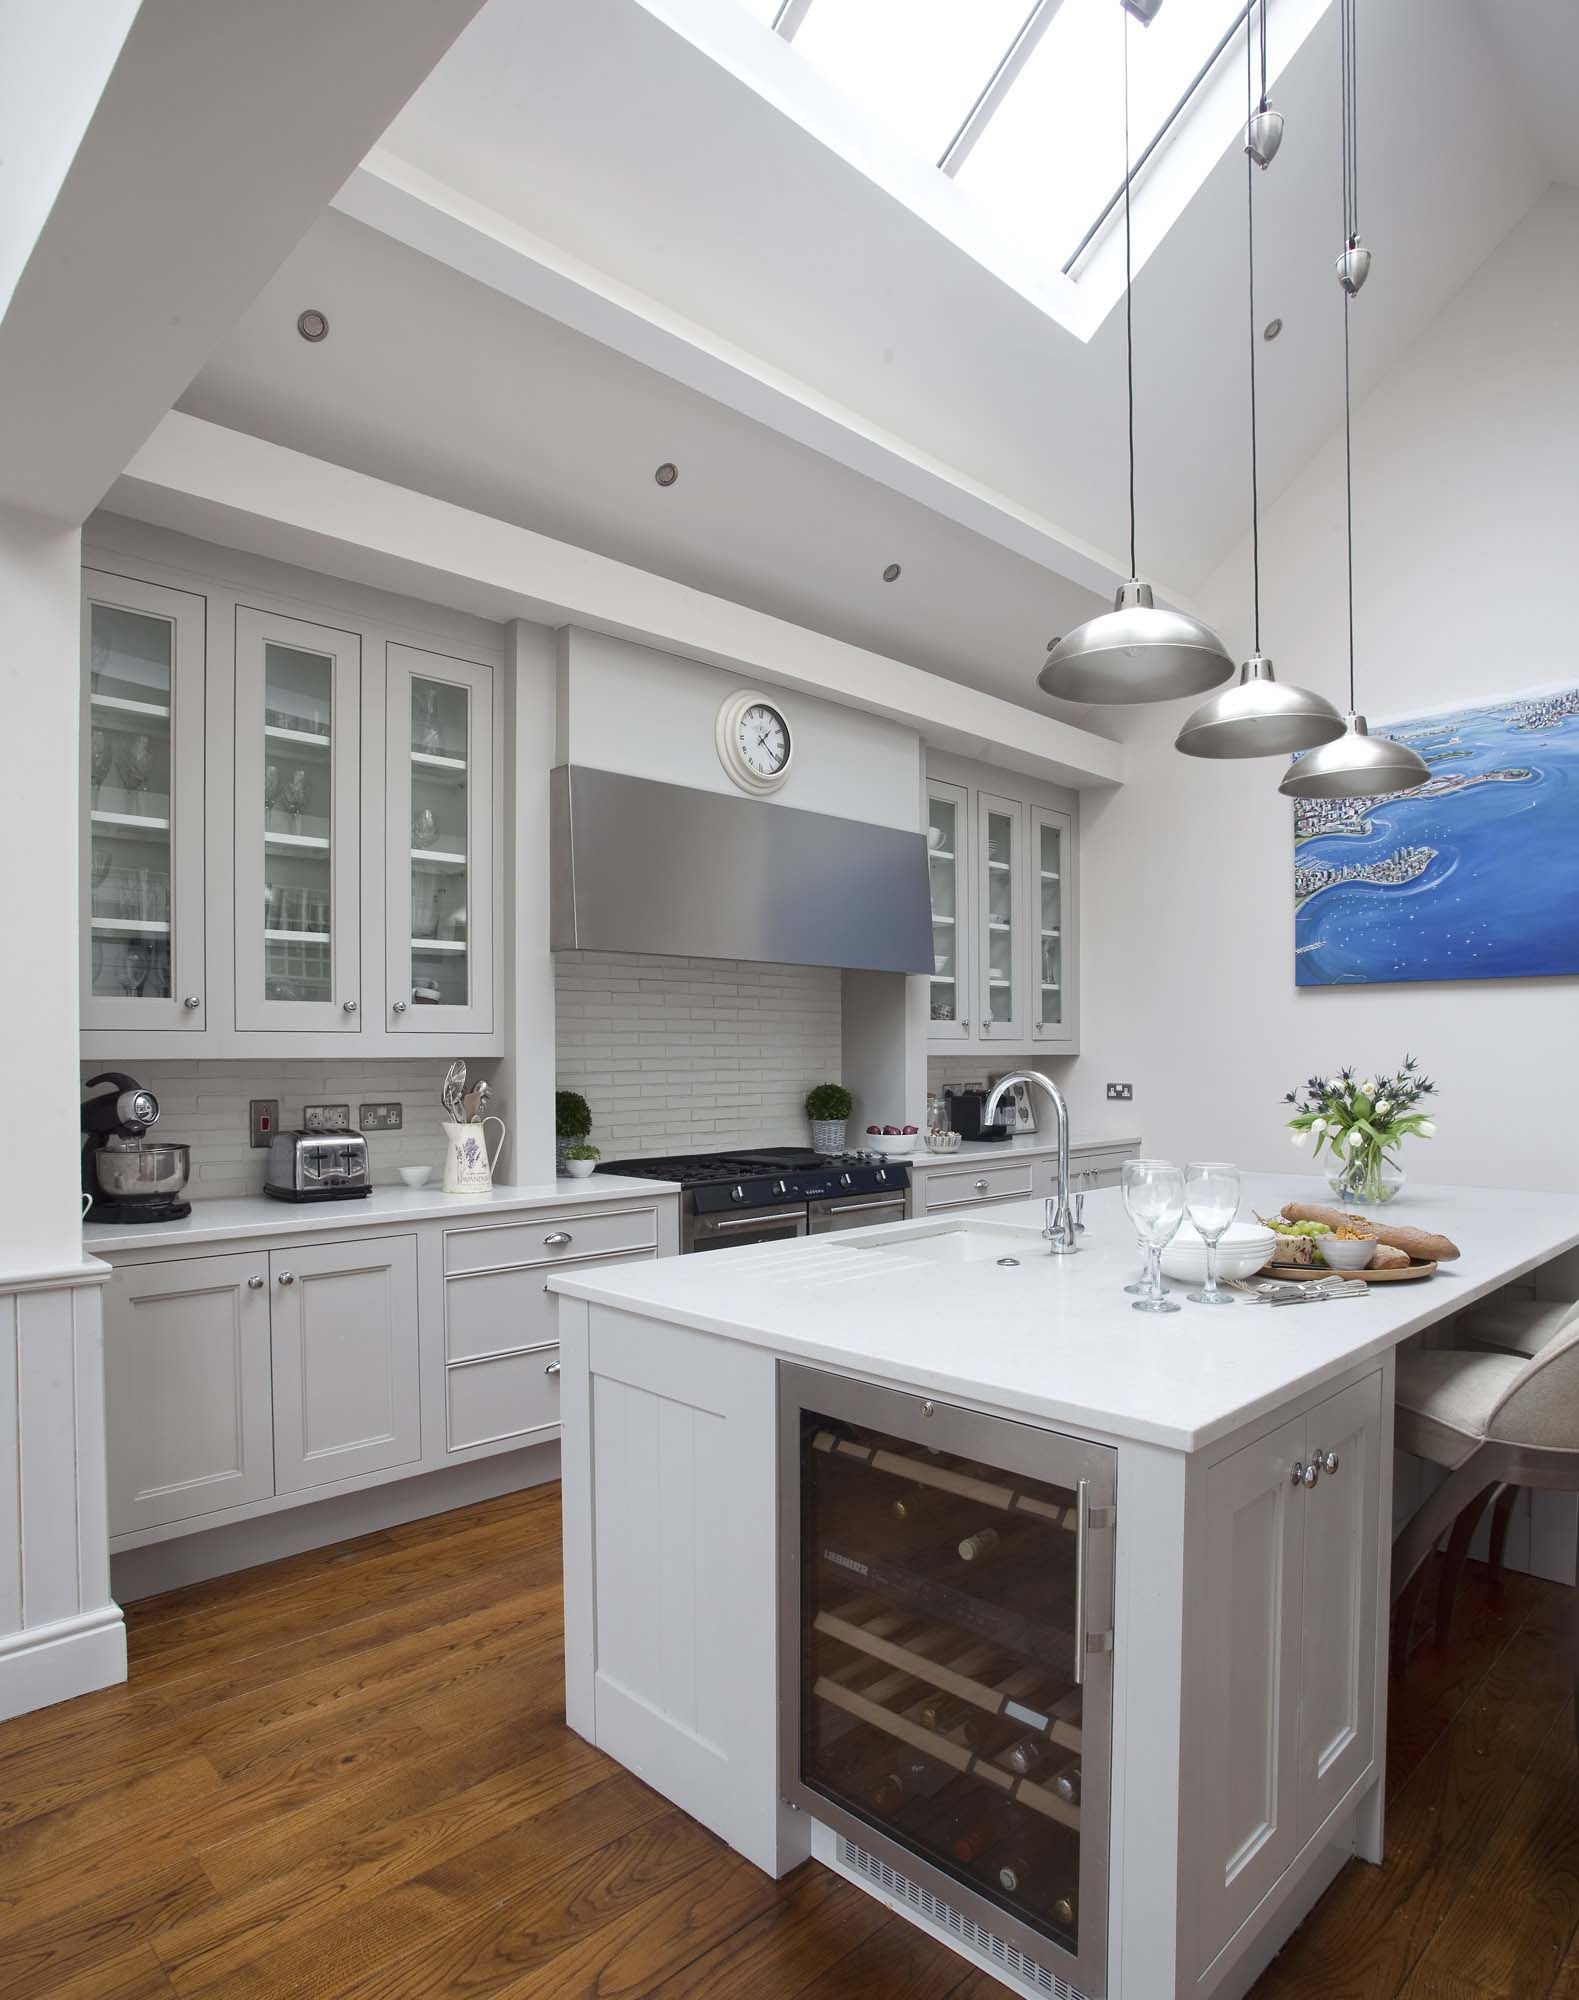 Etonnant This City Residence Features A New England Kitchen Design, Creating A  Homely Space For The